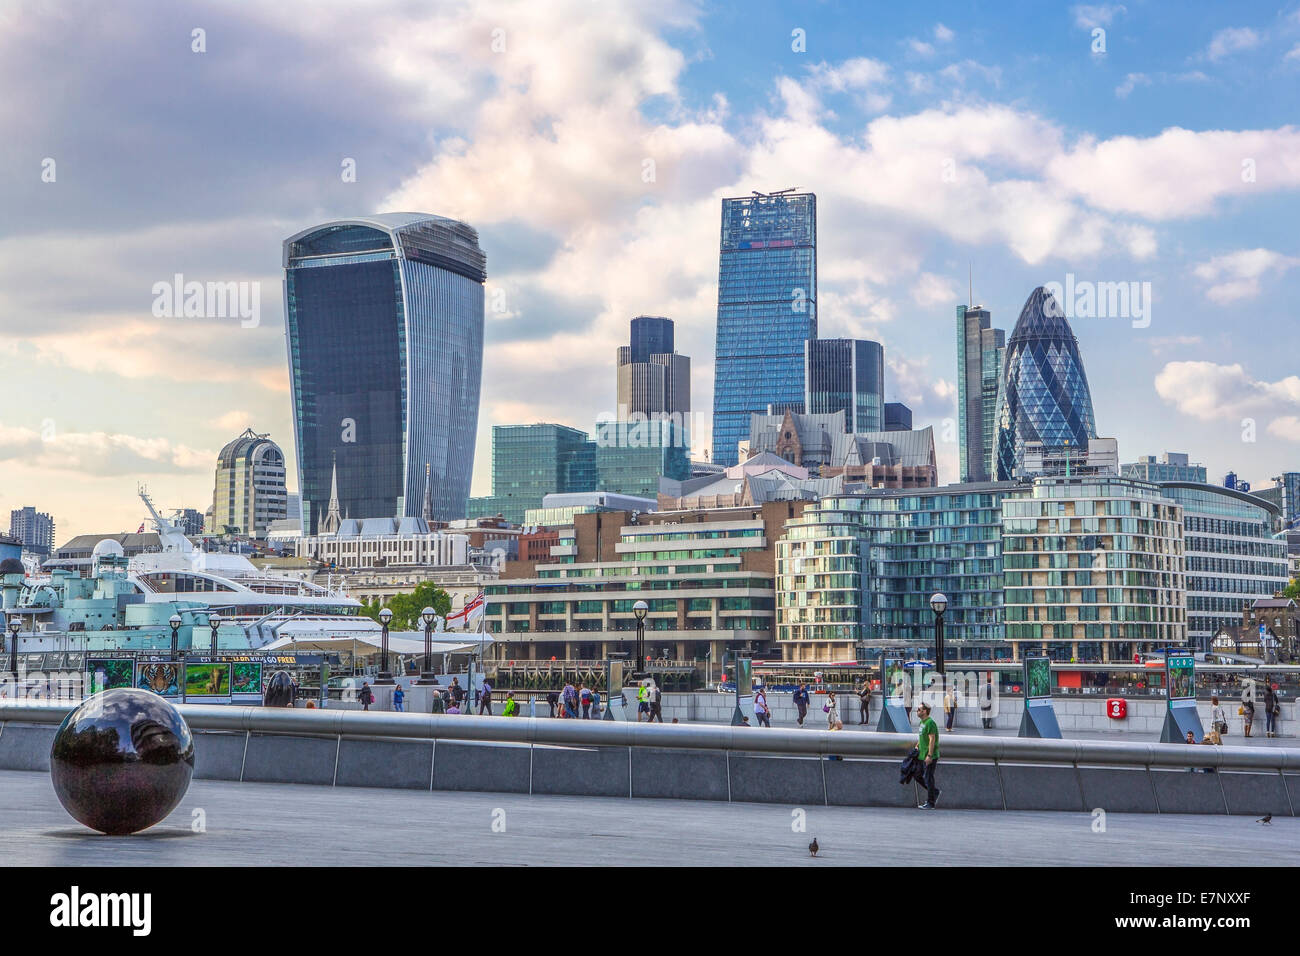 City, London, England, UK, architecture, ball, famous, skyline, Thames, river, tourism, travel - Stock Image